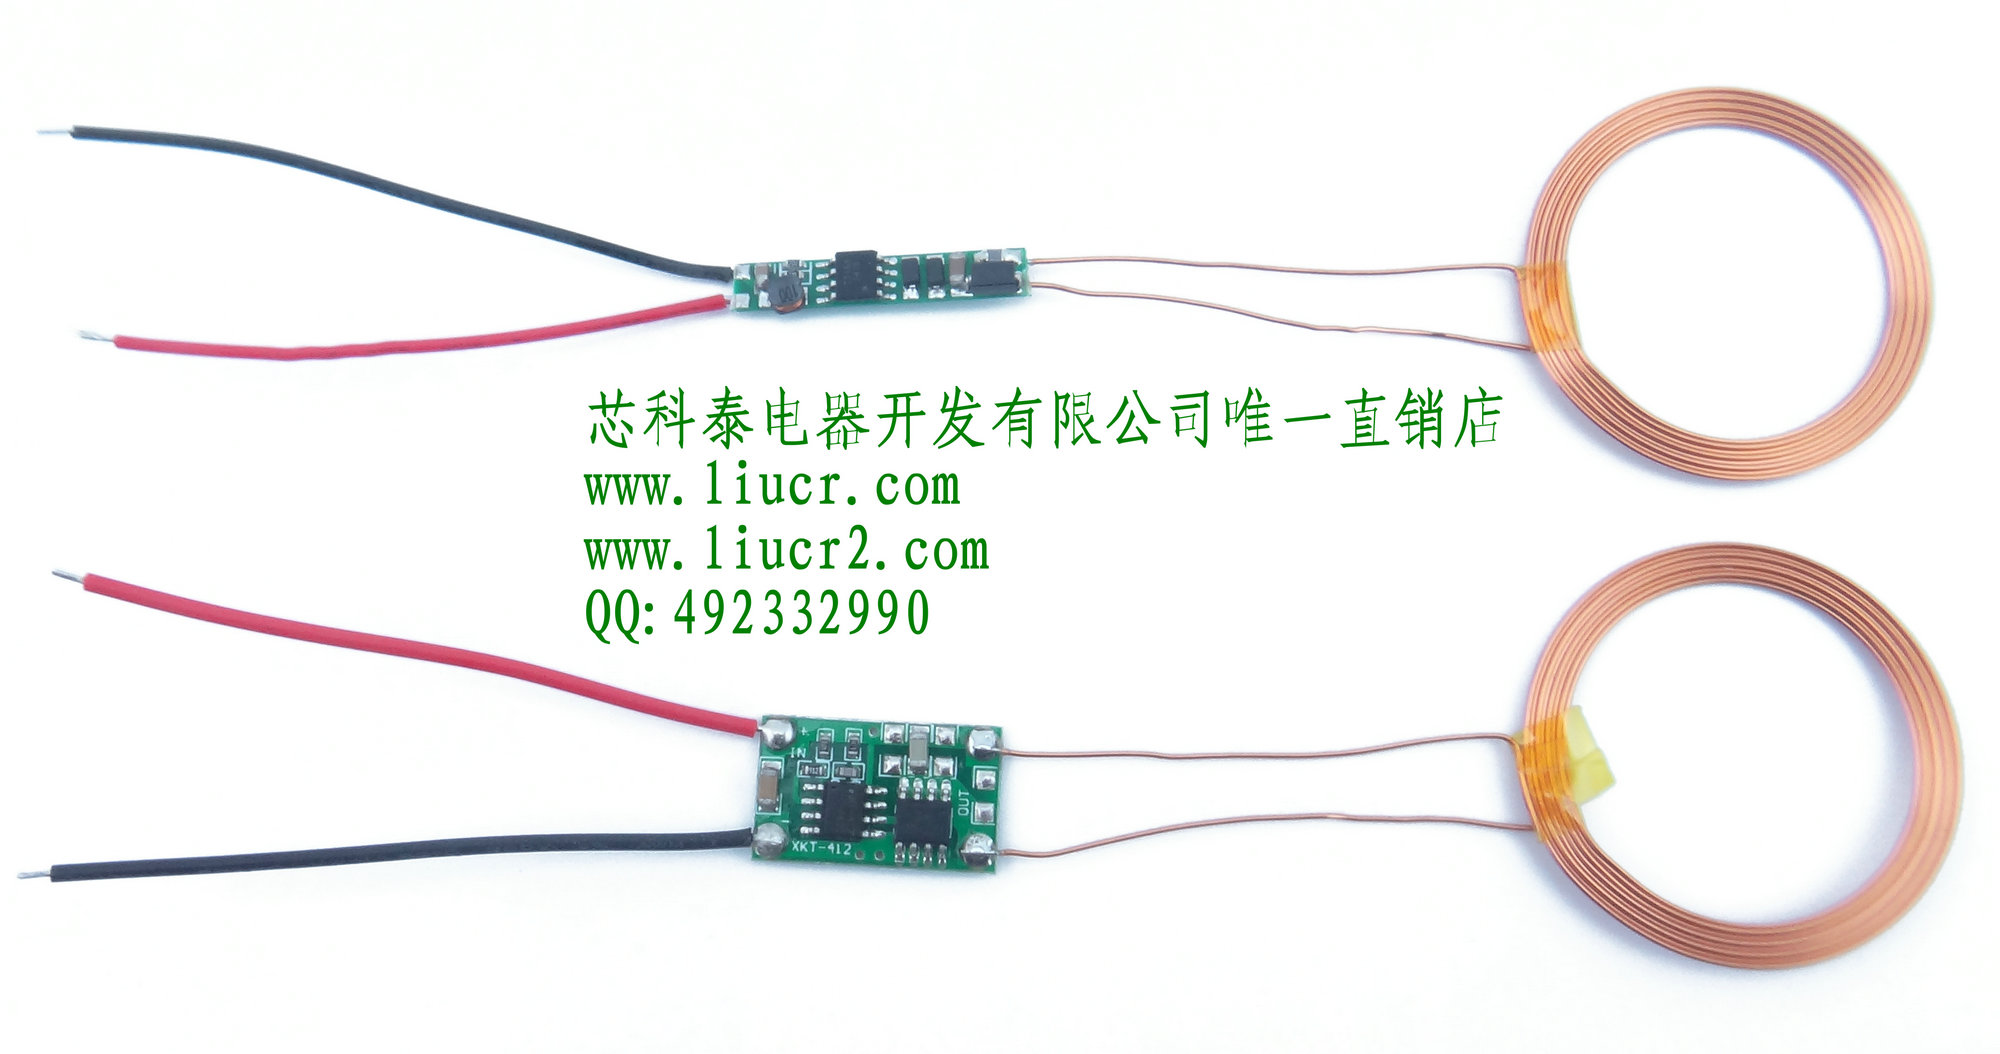 Tattoo Power Supply Wiring Diagram 3 Phase Split Ac Online Buy Wholesale From China